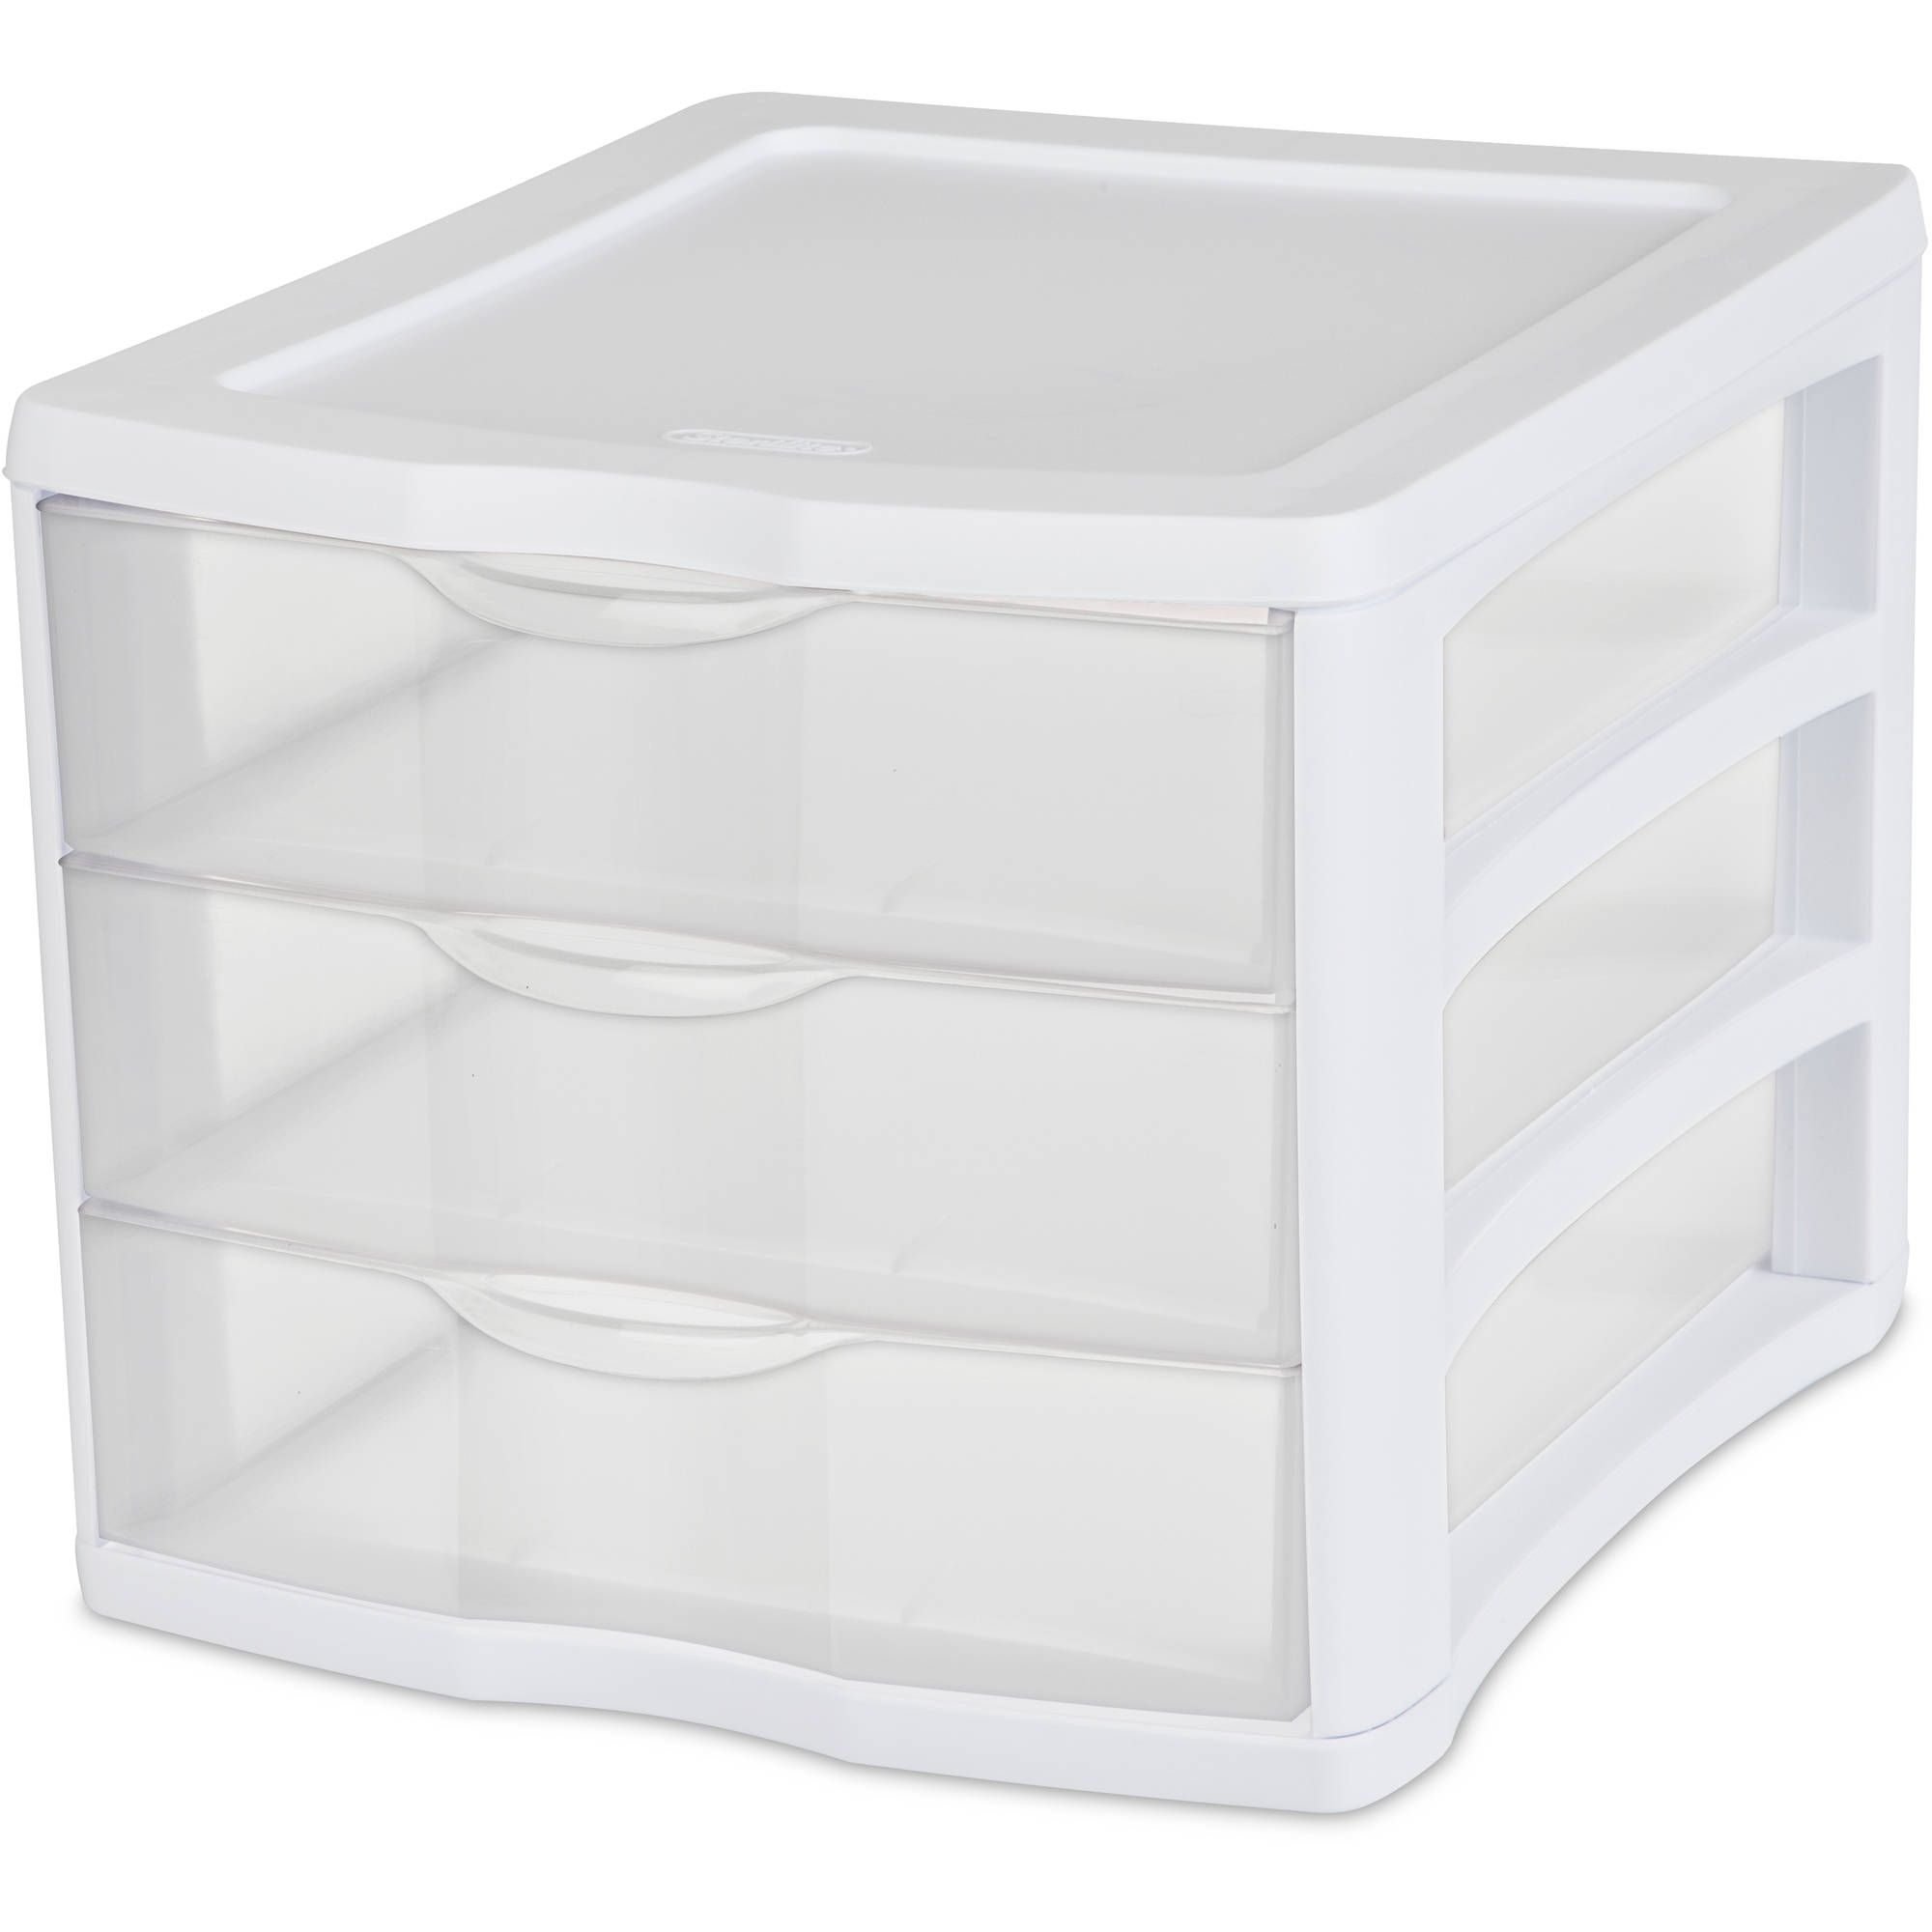 Sterilite Stackable Plastic Storage Drawers  sc 1 st  Pinterest & Sterilite Stackable Plastic Storage Drawers | http://ezserver.us ...